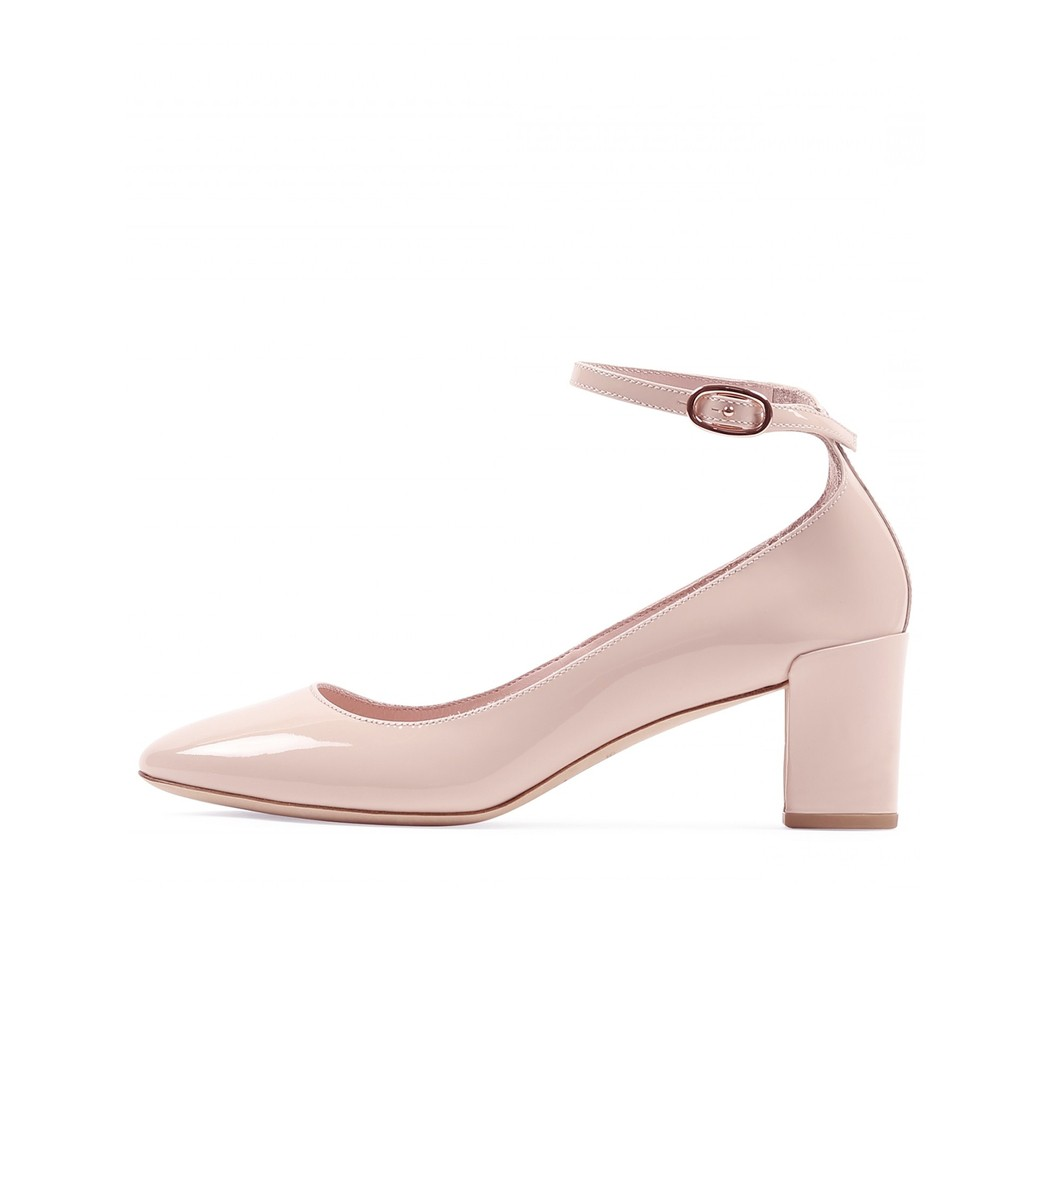 REPETTO Electra Mary Jane Heels Pink